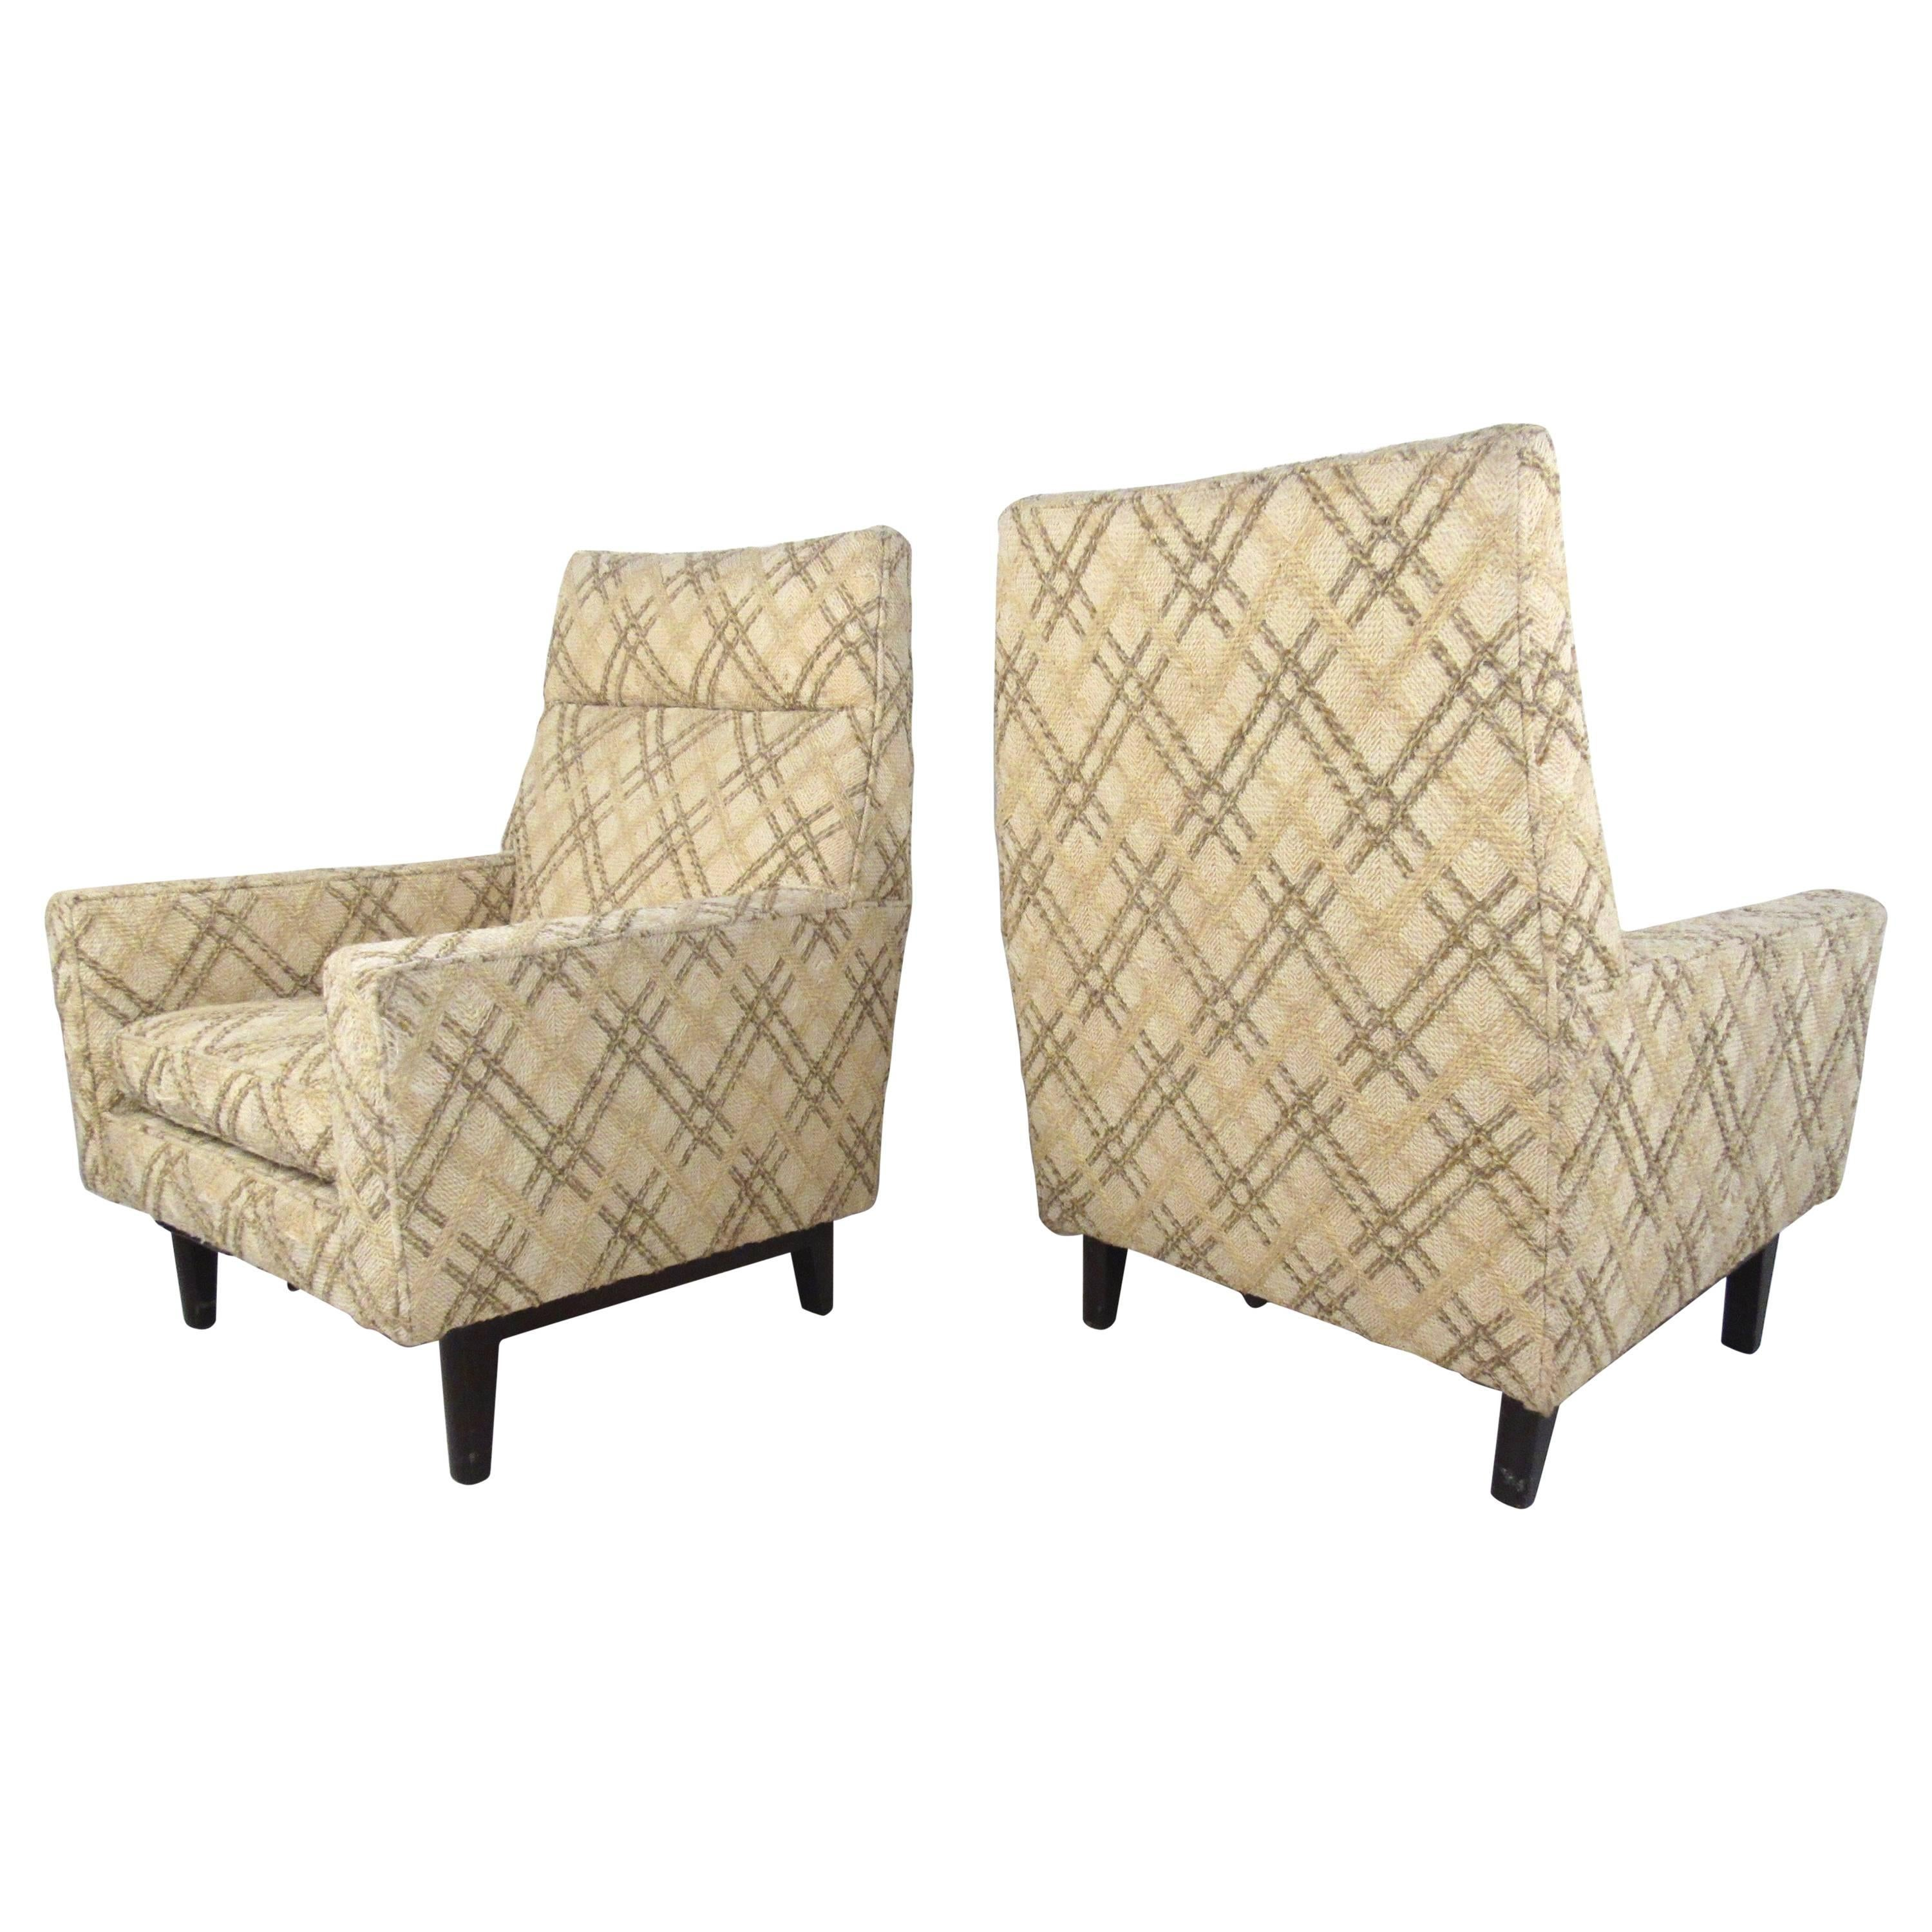 Pair of Mid-Century Edward Wormley Lounge Chairs for Dunbar